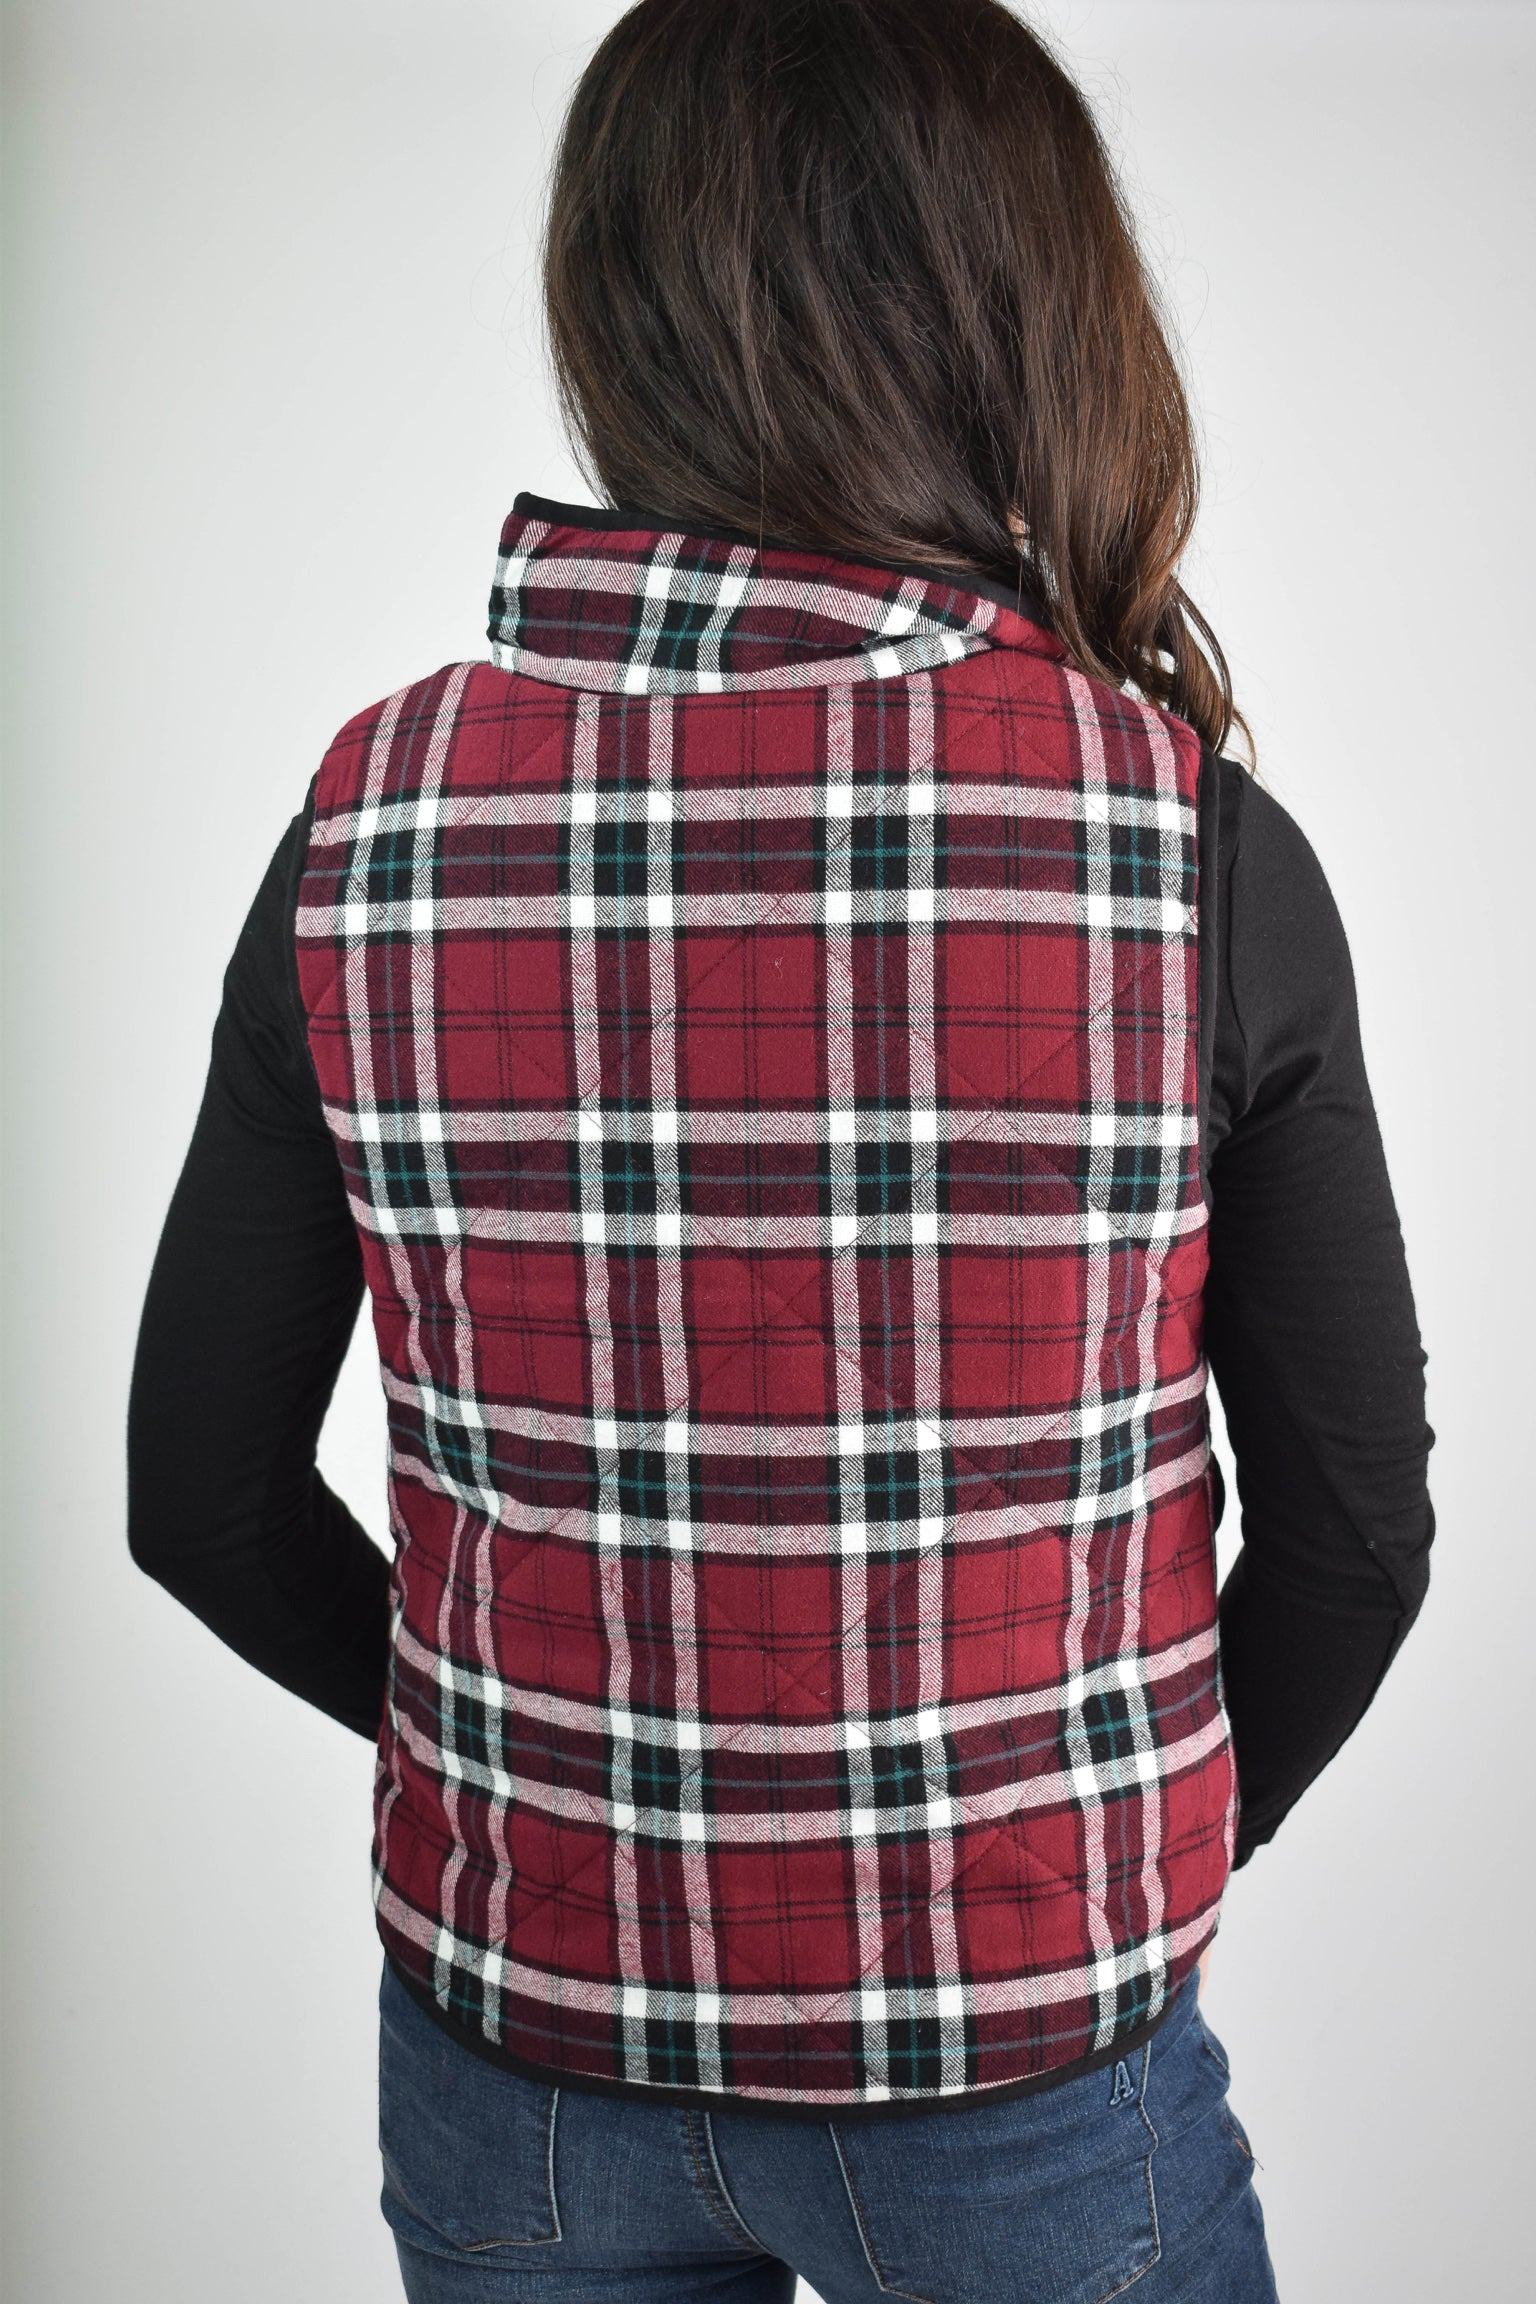 Fresh and Fall Plaid Black and Red Vest